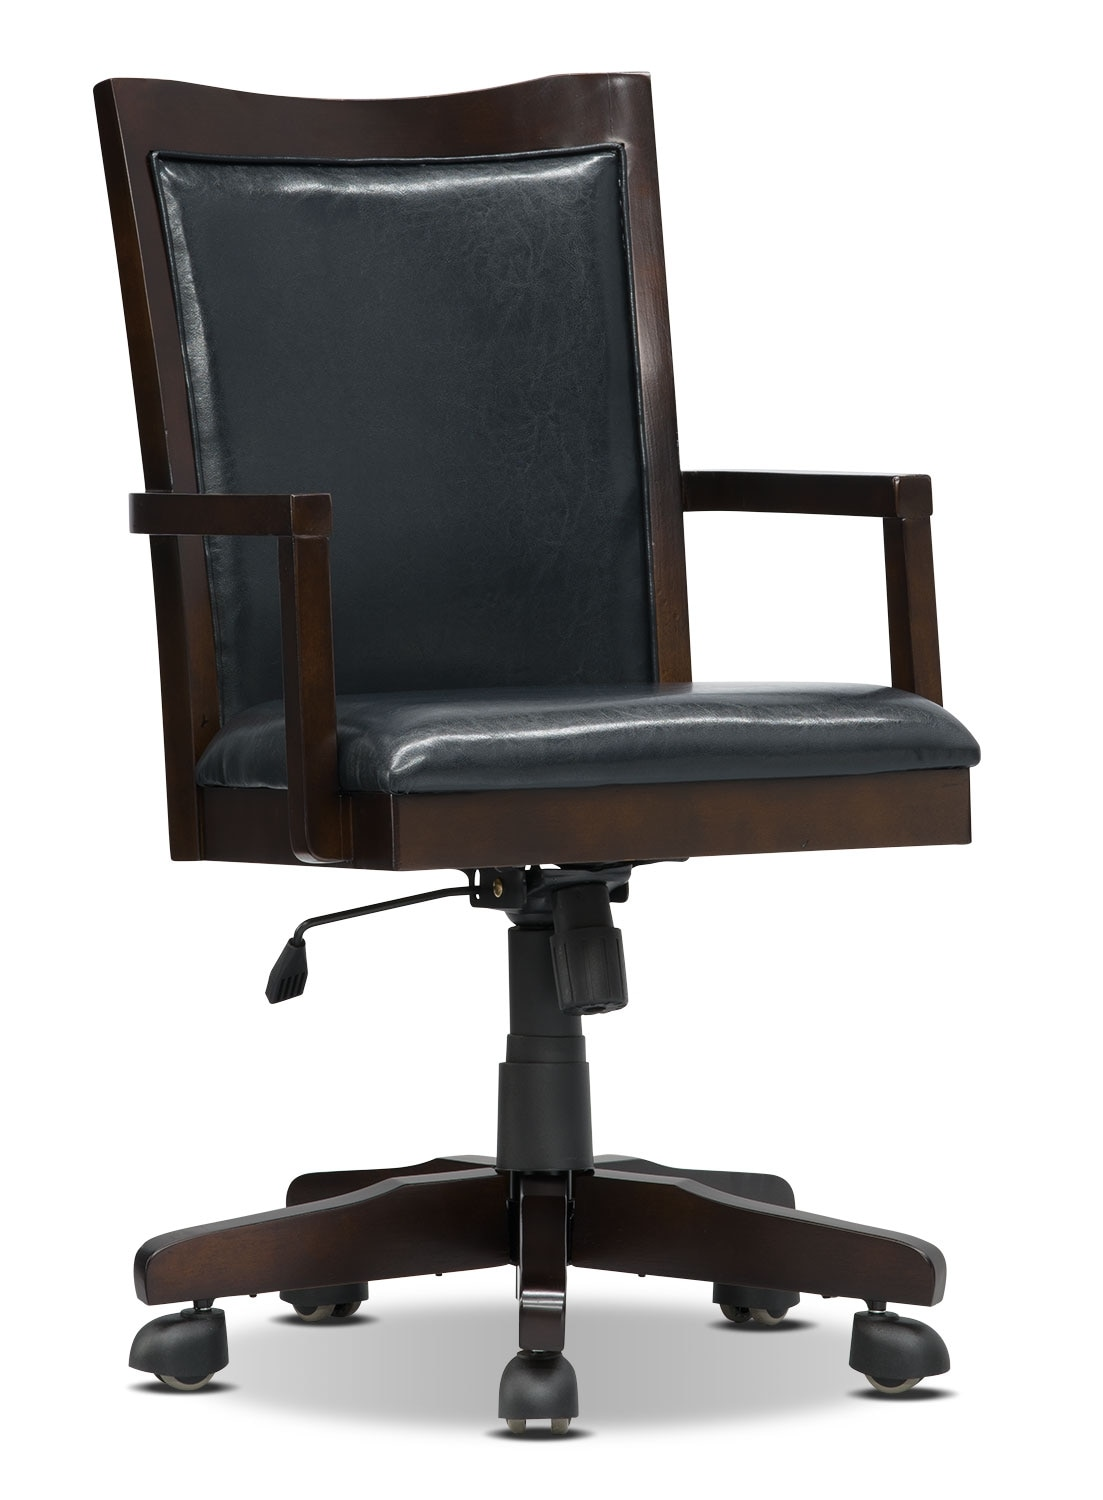 Home Office Furniture - York Wood-Trim Office Chair